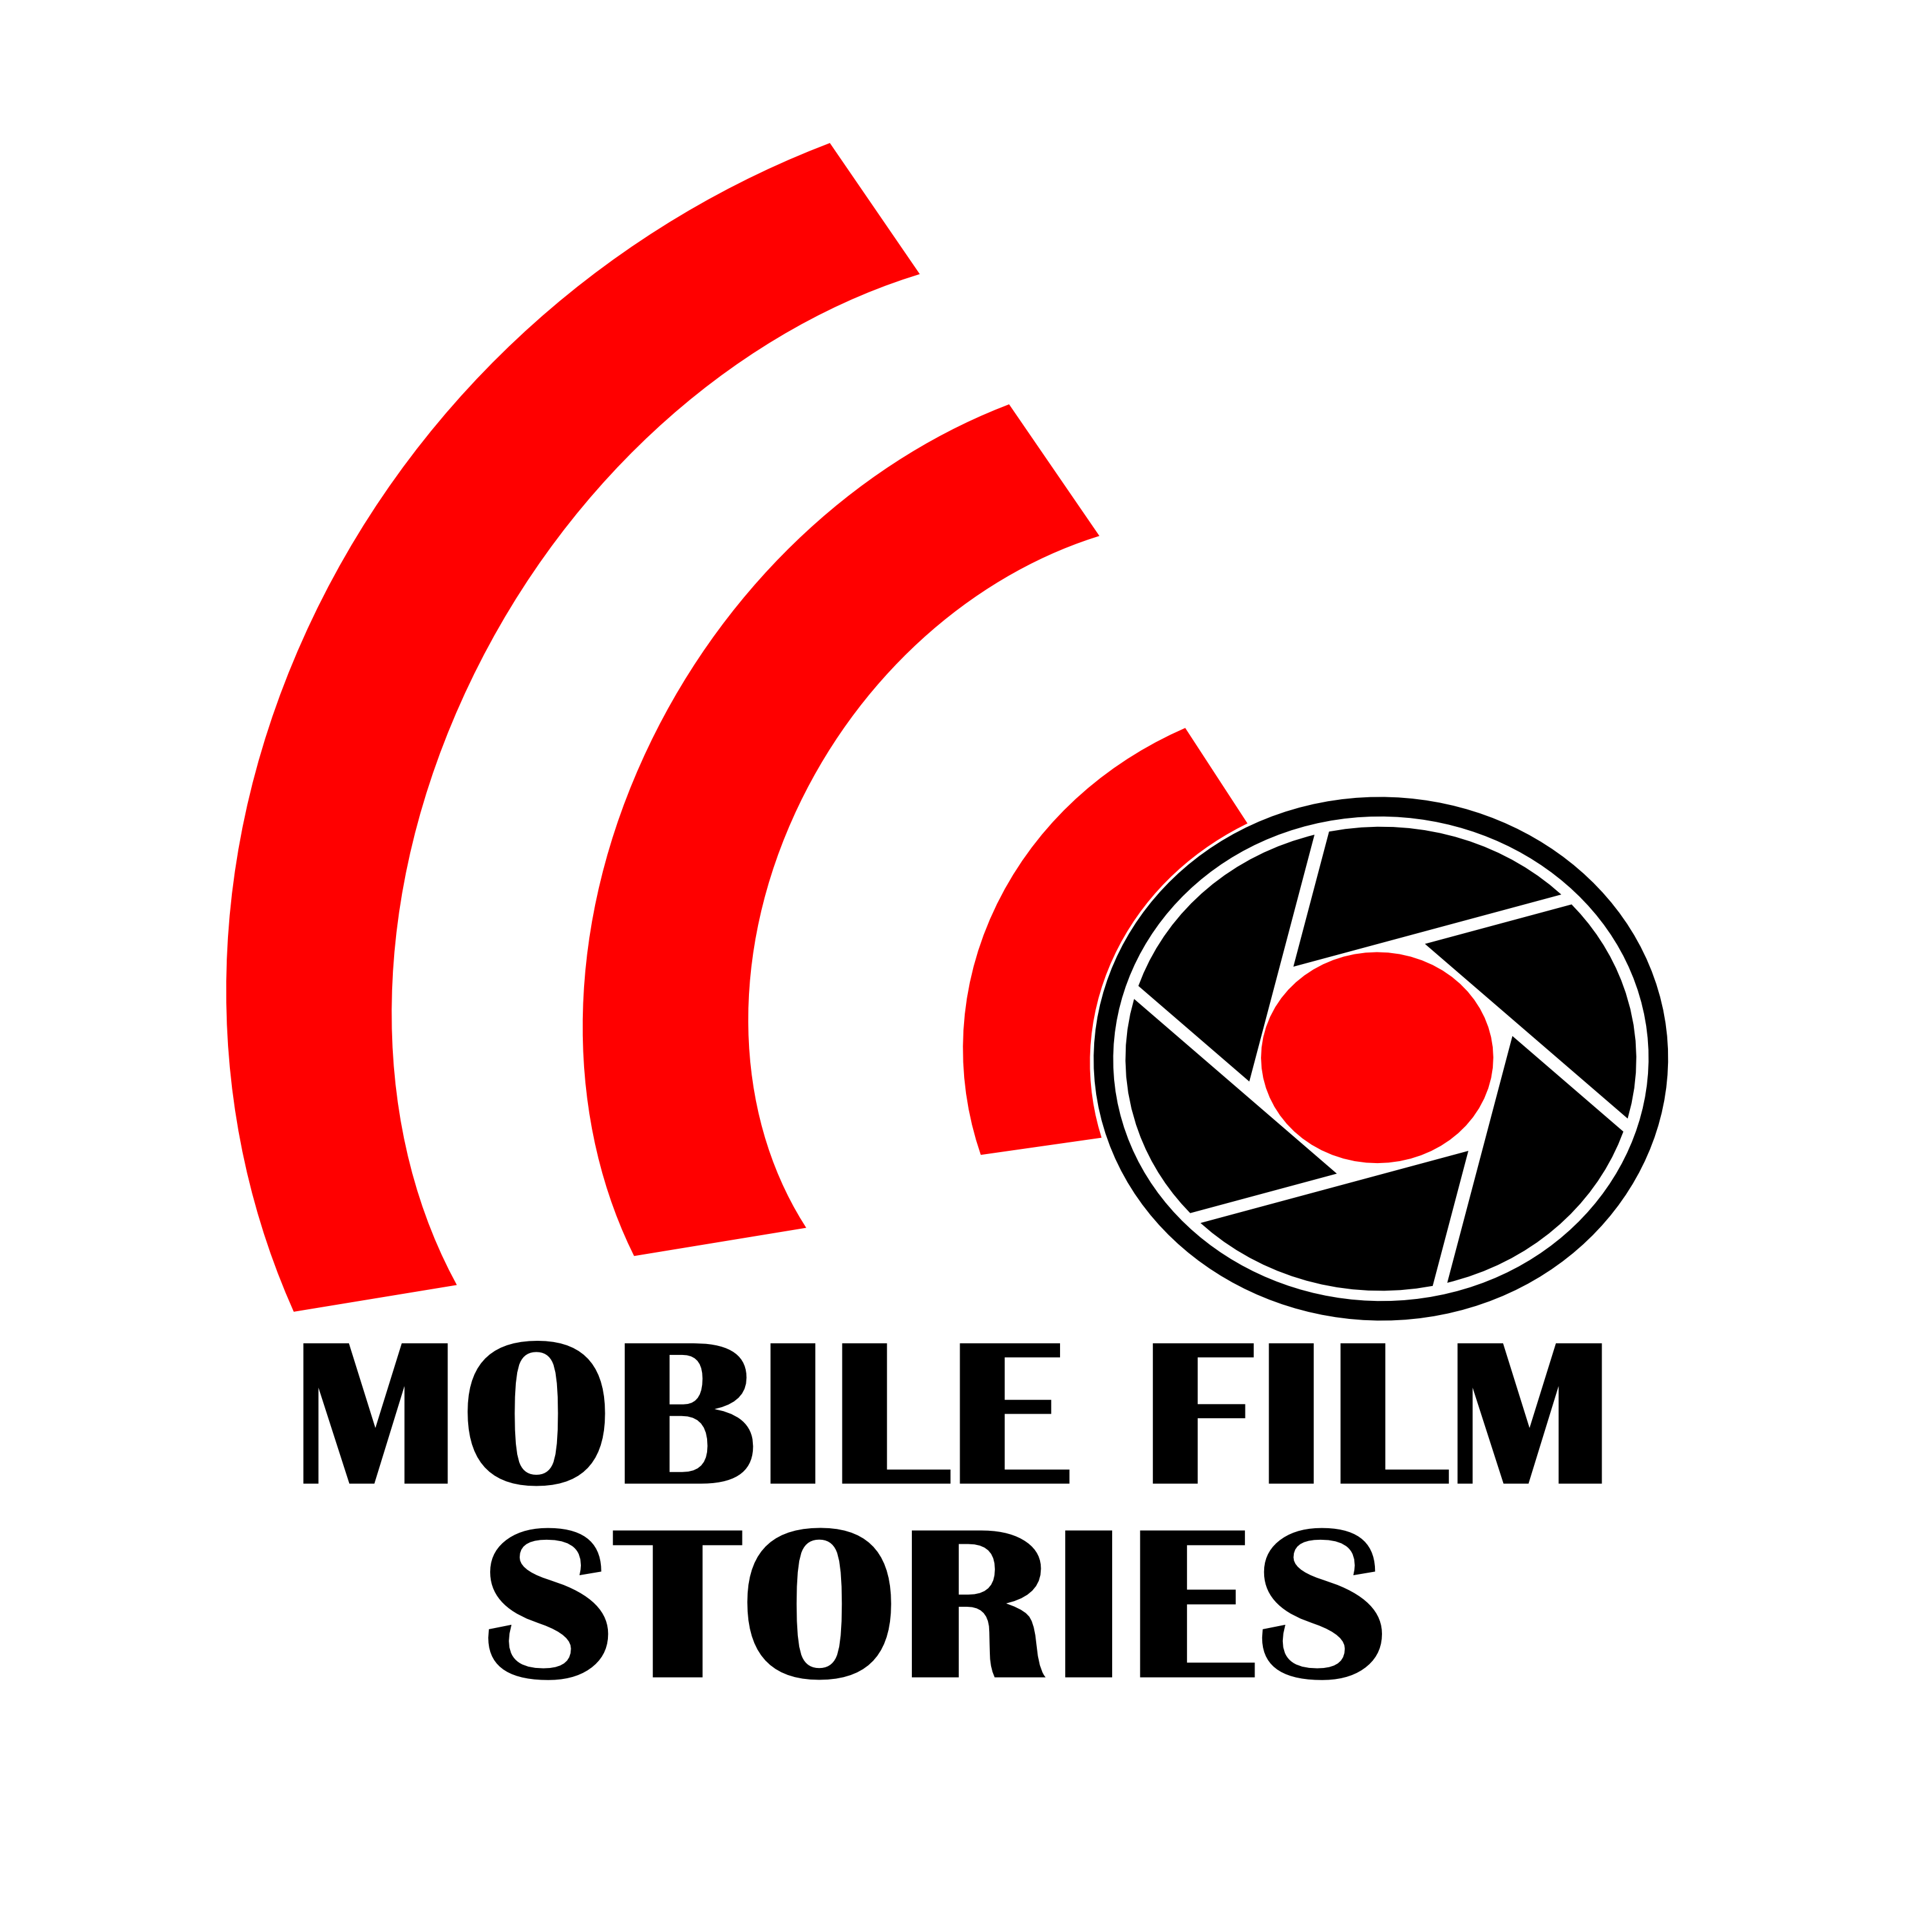 Mobile Film Stories logo